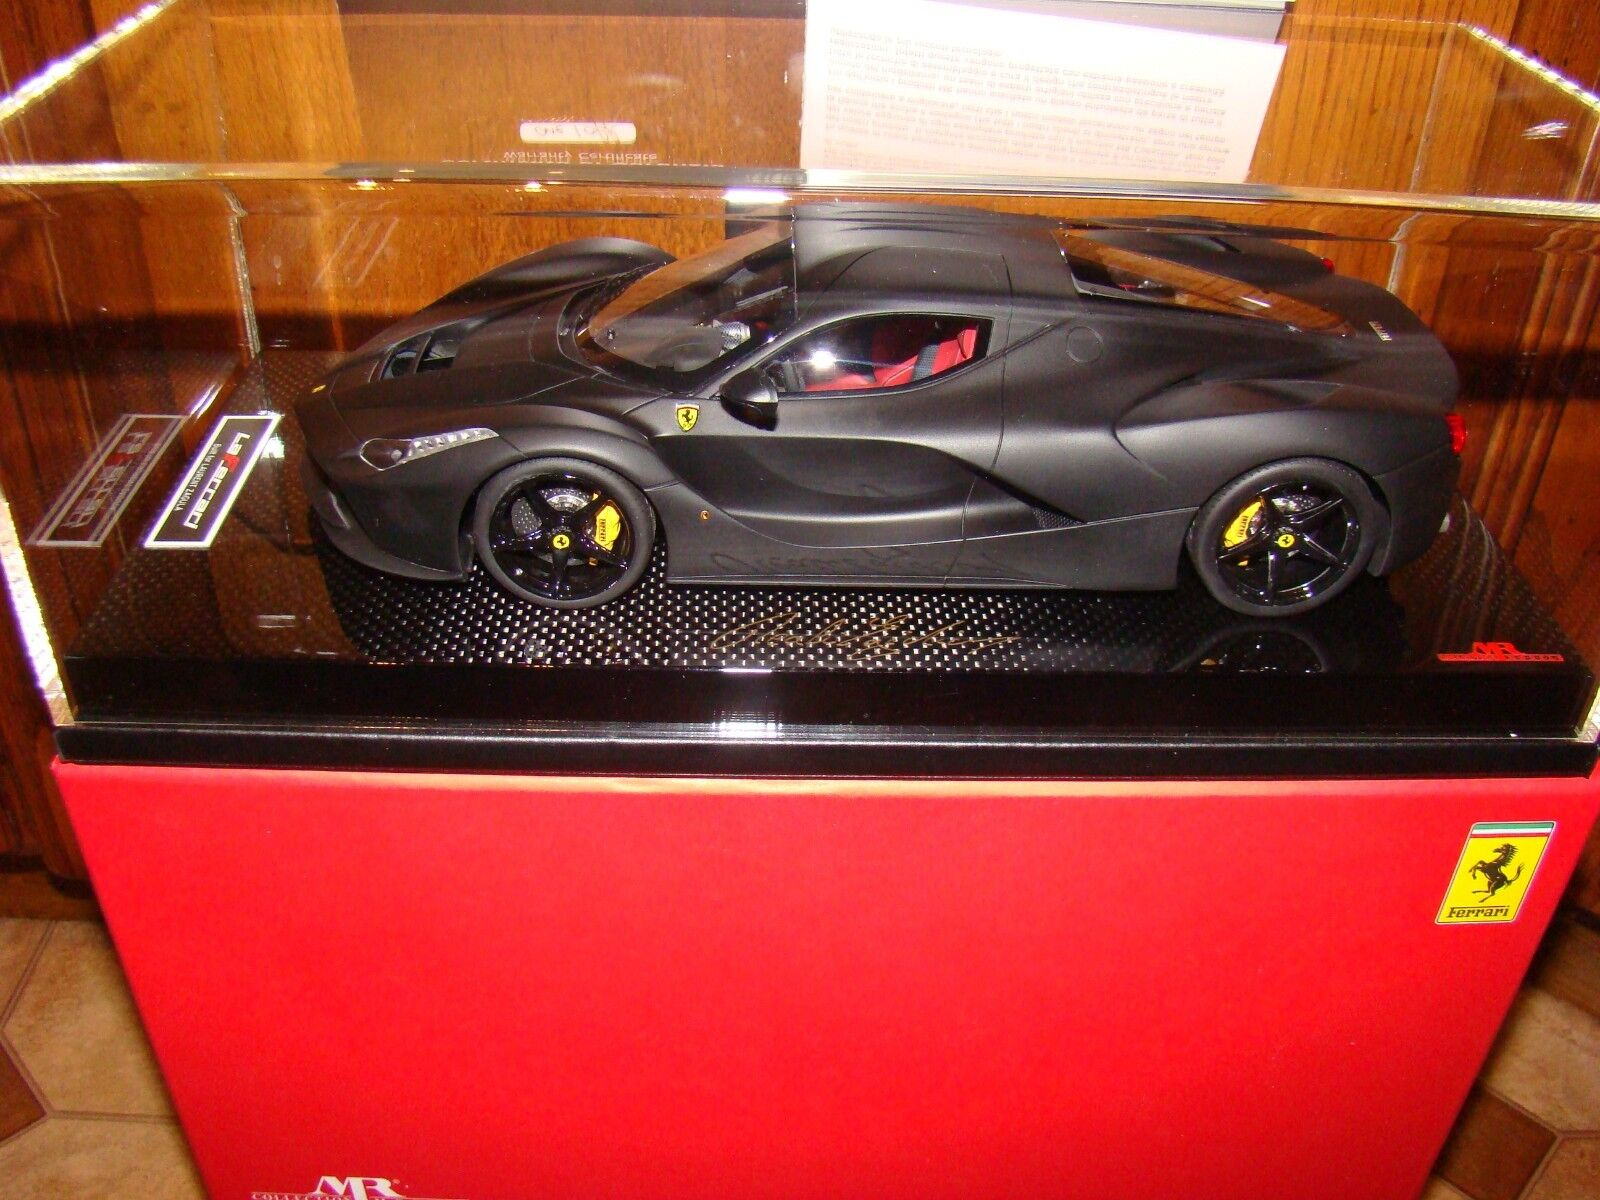 FERRARI LAFERRARI   MR COLLECTION   ONE OFF  NOIR MATT 1 18 EME   LIMITED  RARE